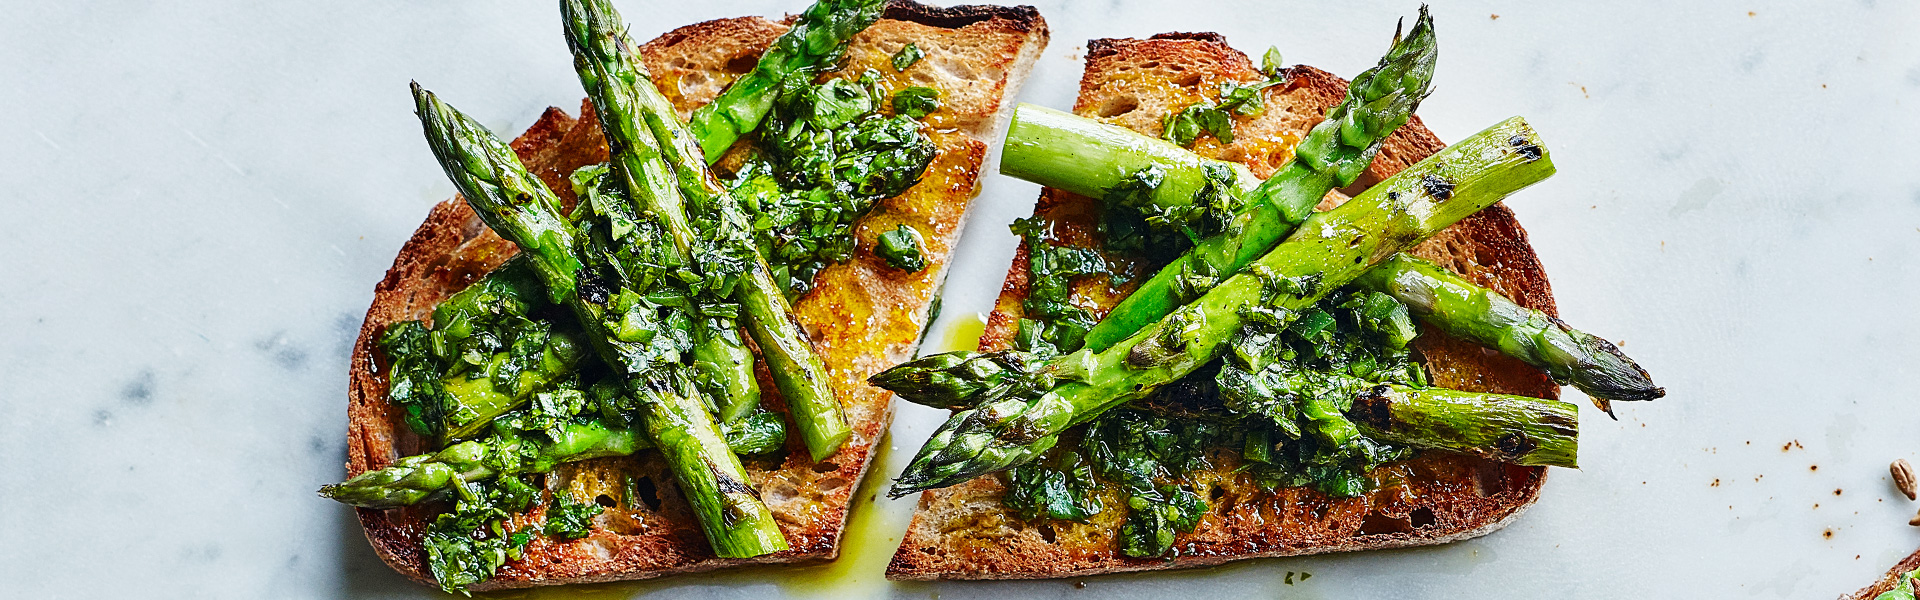 Madeleine Shaw: Chargrilled Asparagus and Chimichurri Recipe